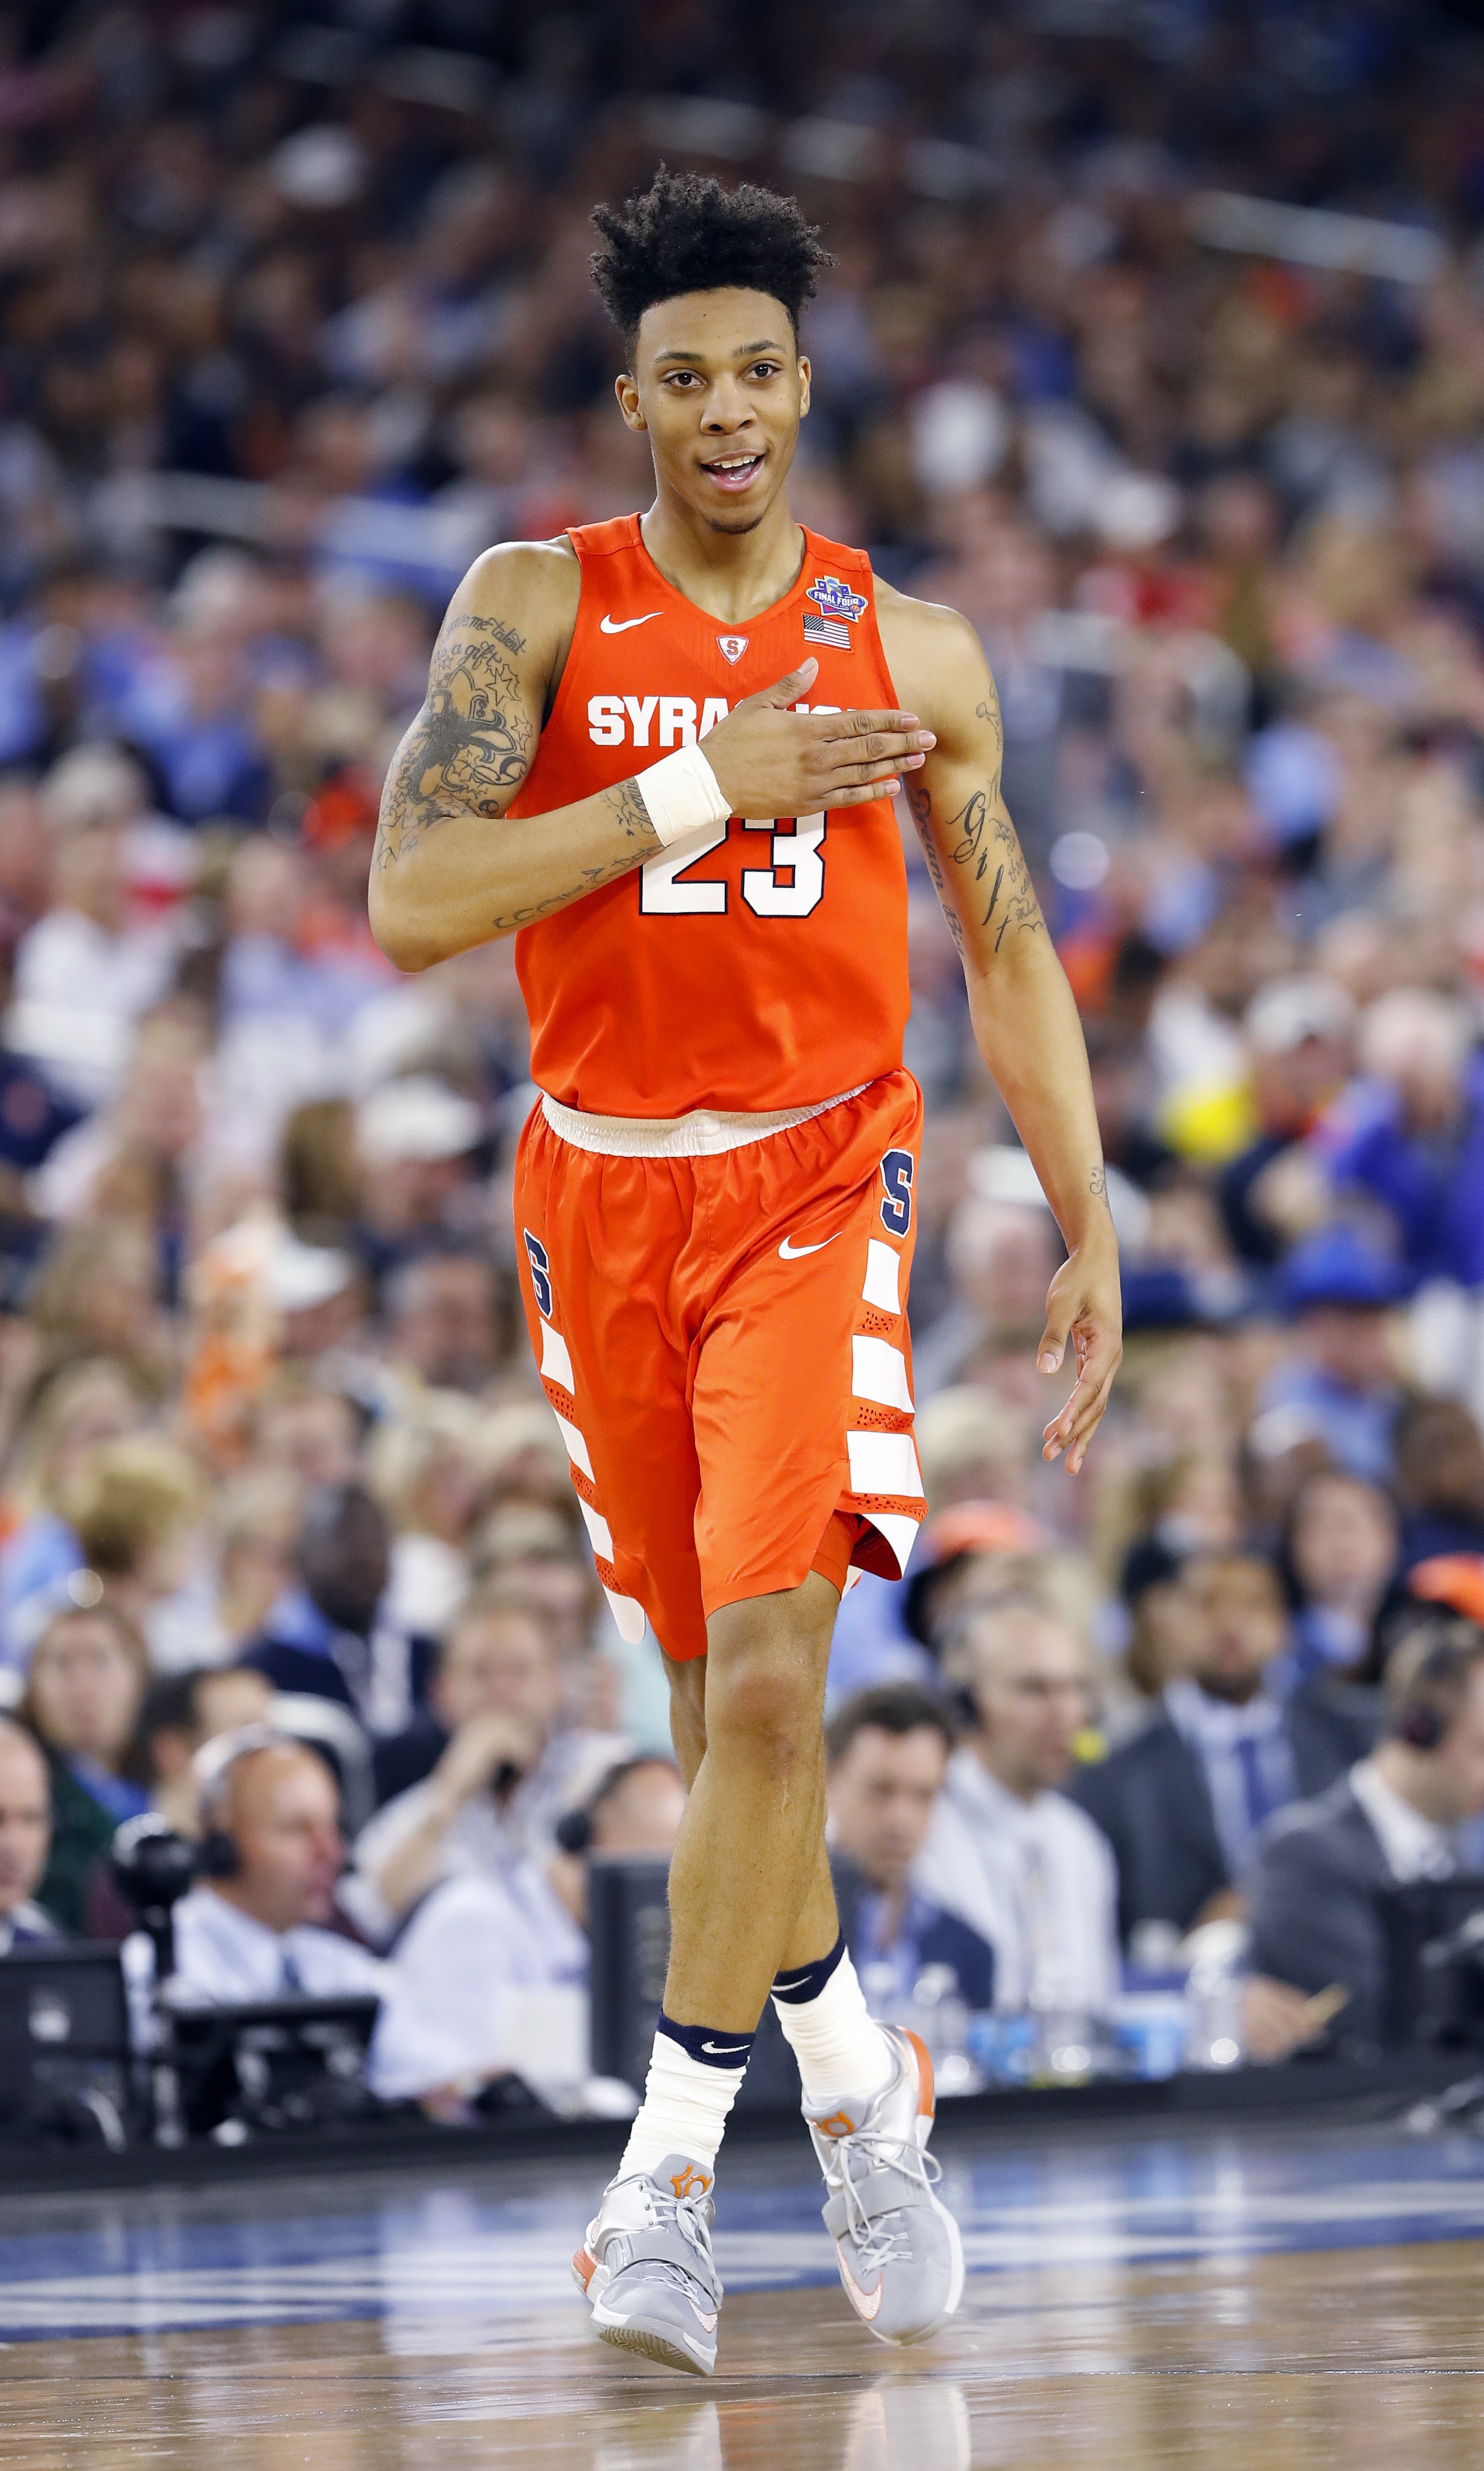 Syracuse guard Malachi Richardson (23) moves up court against North Carolina during the first half of the NCAA Final Four tournament college basketball semifinal game Saturday, April 2, 2016, in Houston. (AP Photo/Eric Gay)